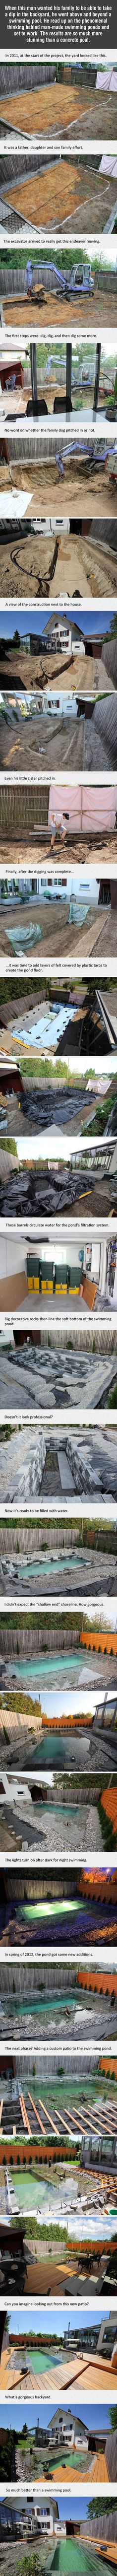 His idea for a backyard seems crazy at first. But after seeing the result? Absolutely genius.